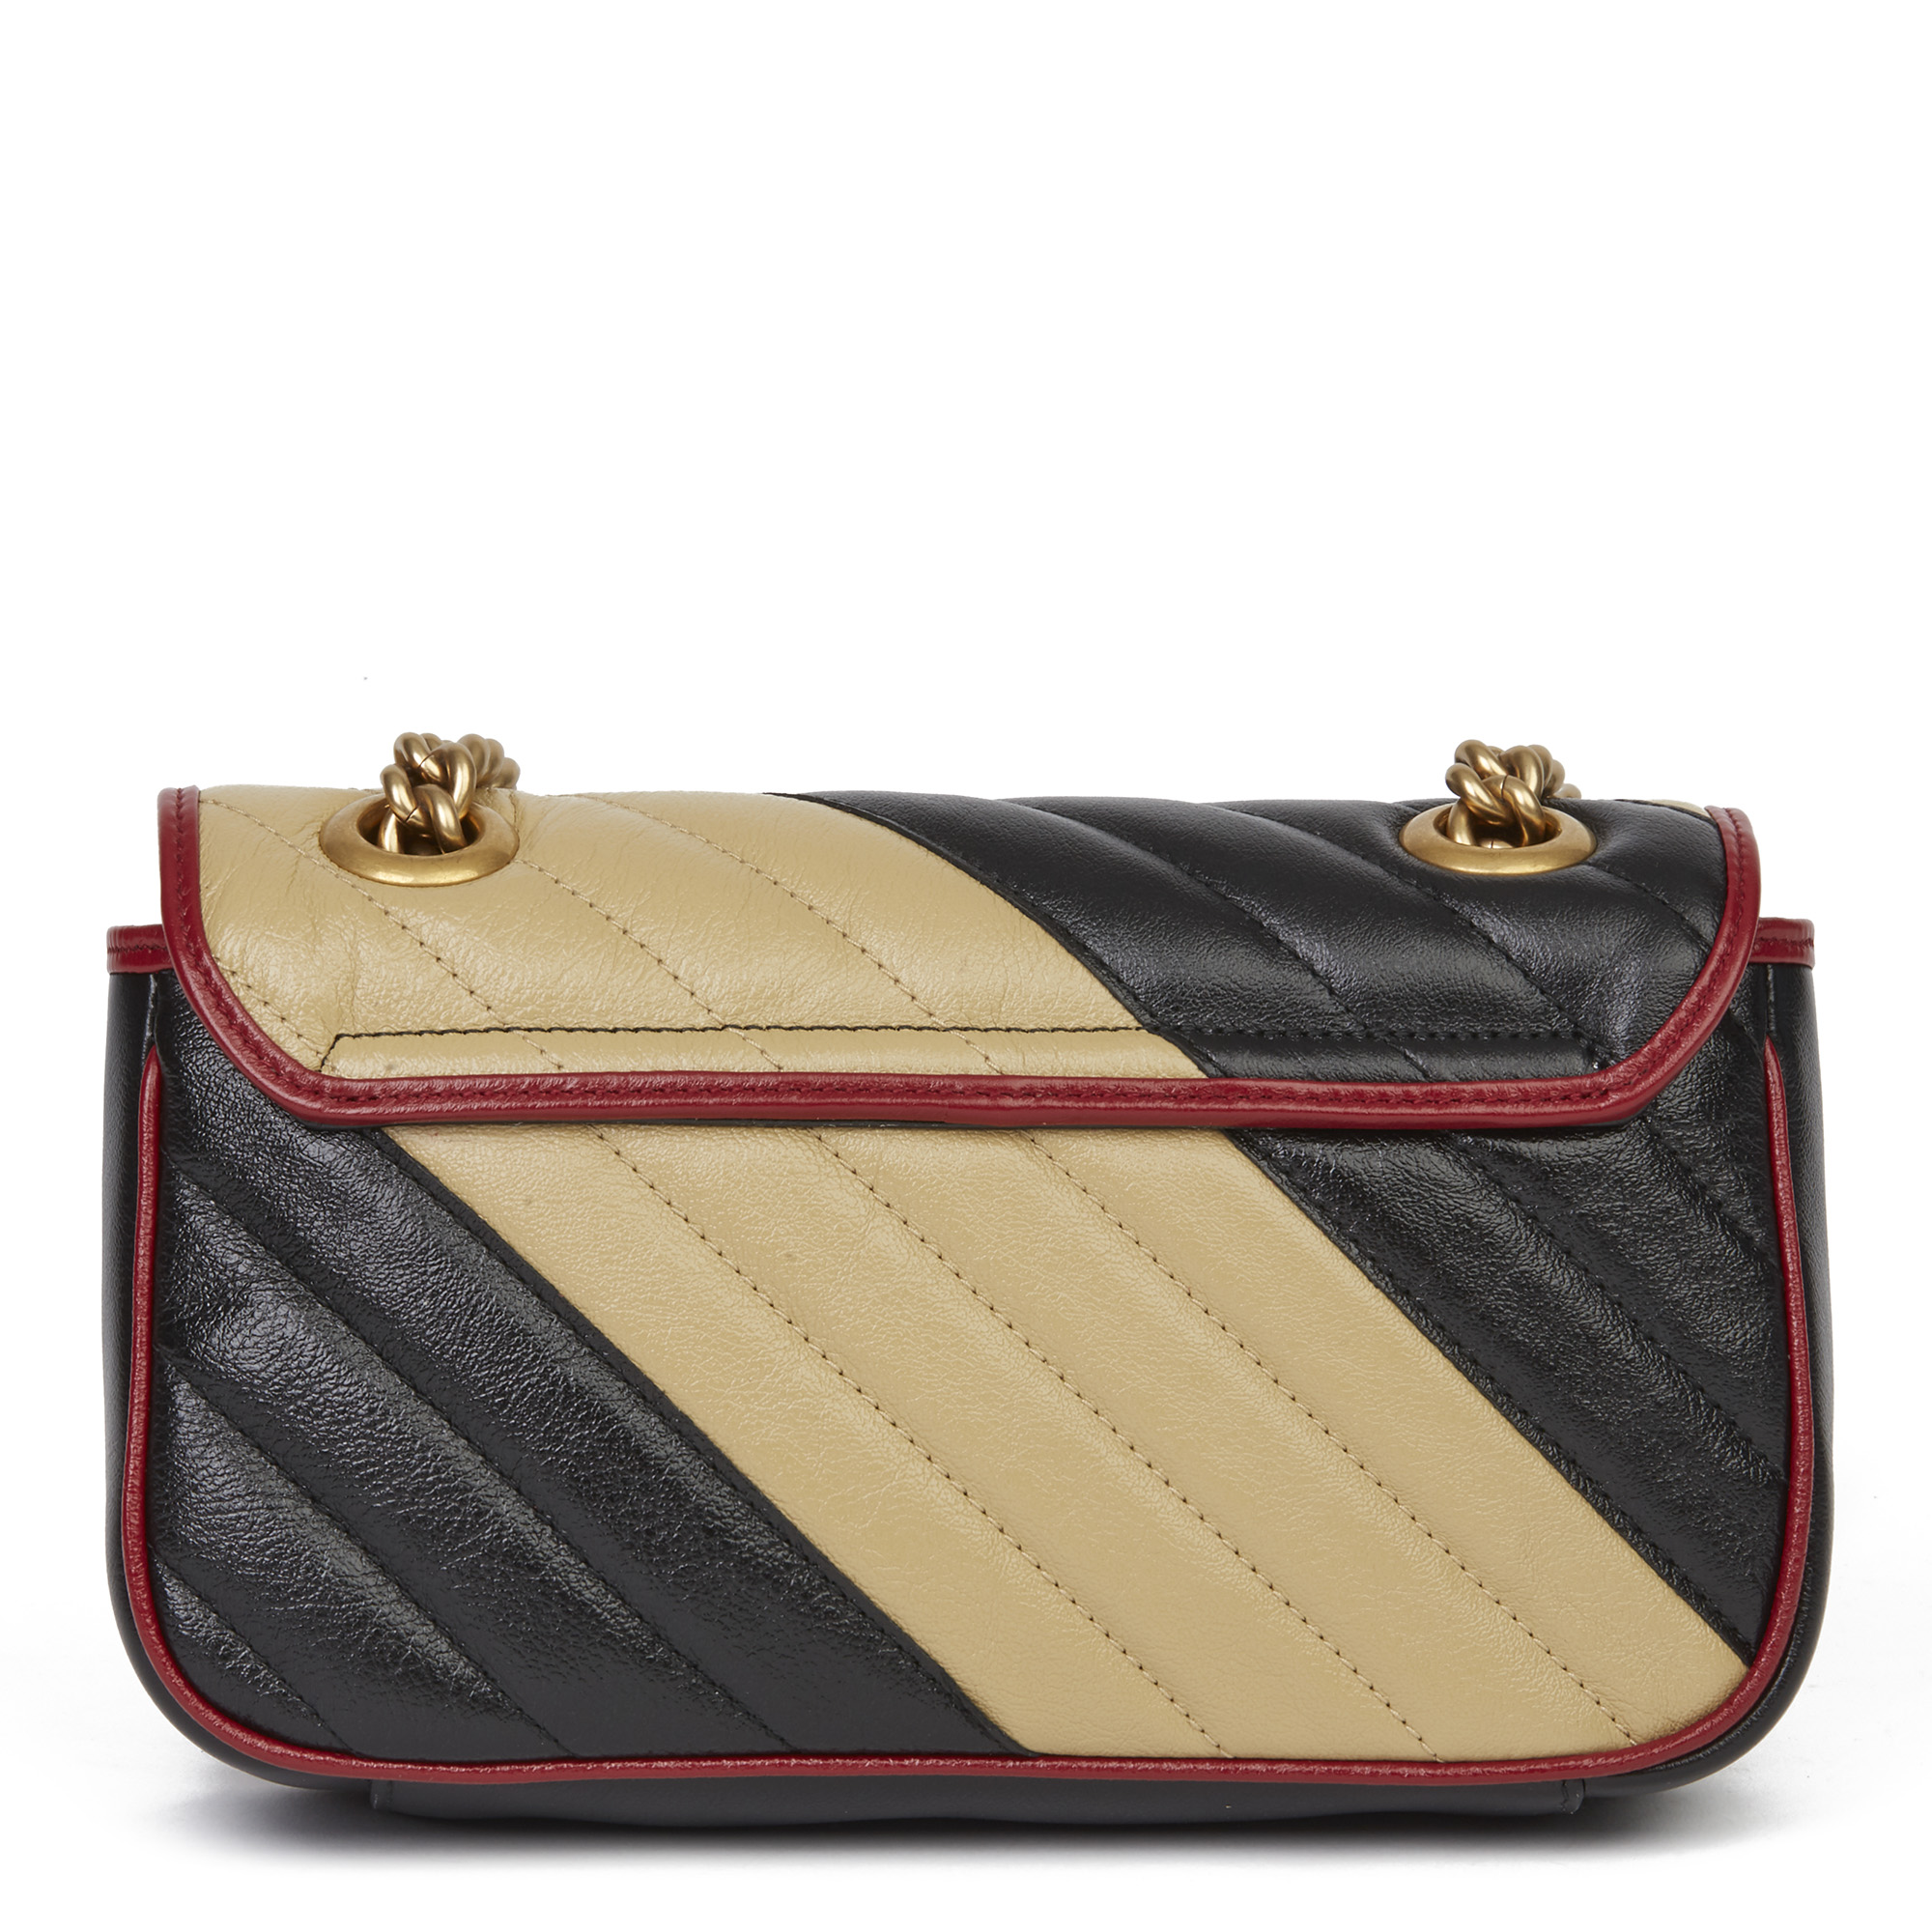 Gucci Black, Cream & Red Diagonal Quilted Aged Calfskin Leather Mini Marmont - Image 10 of 12